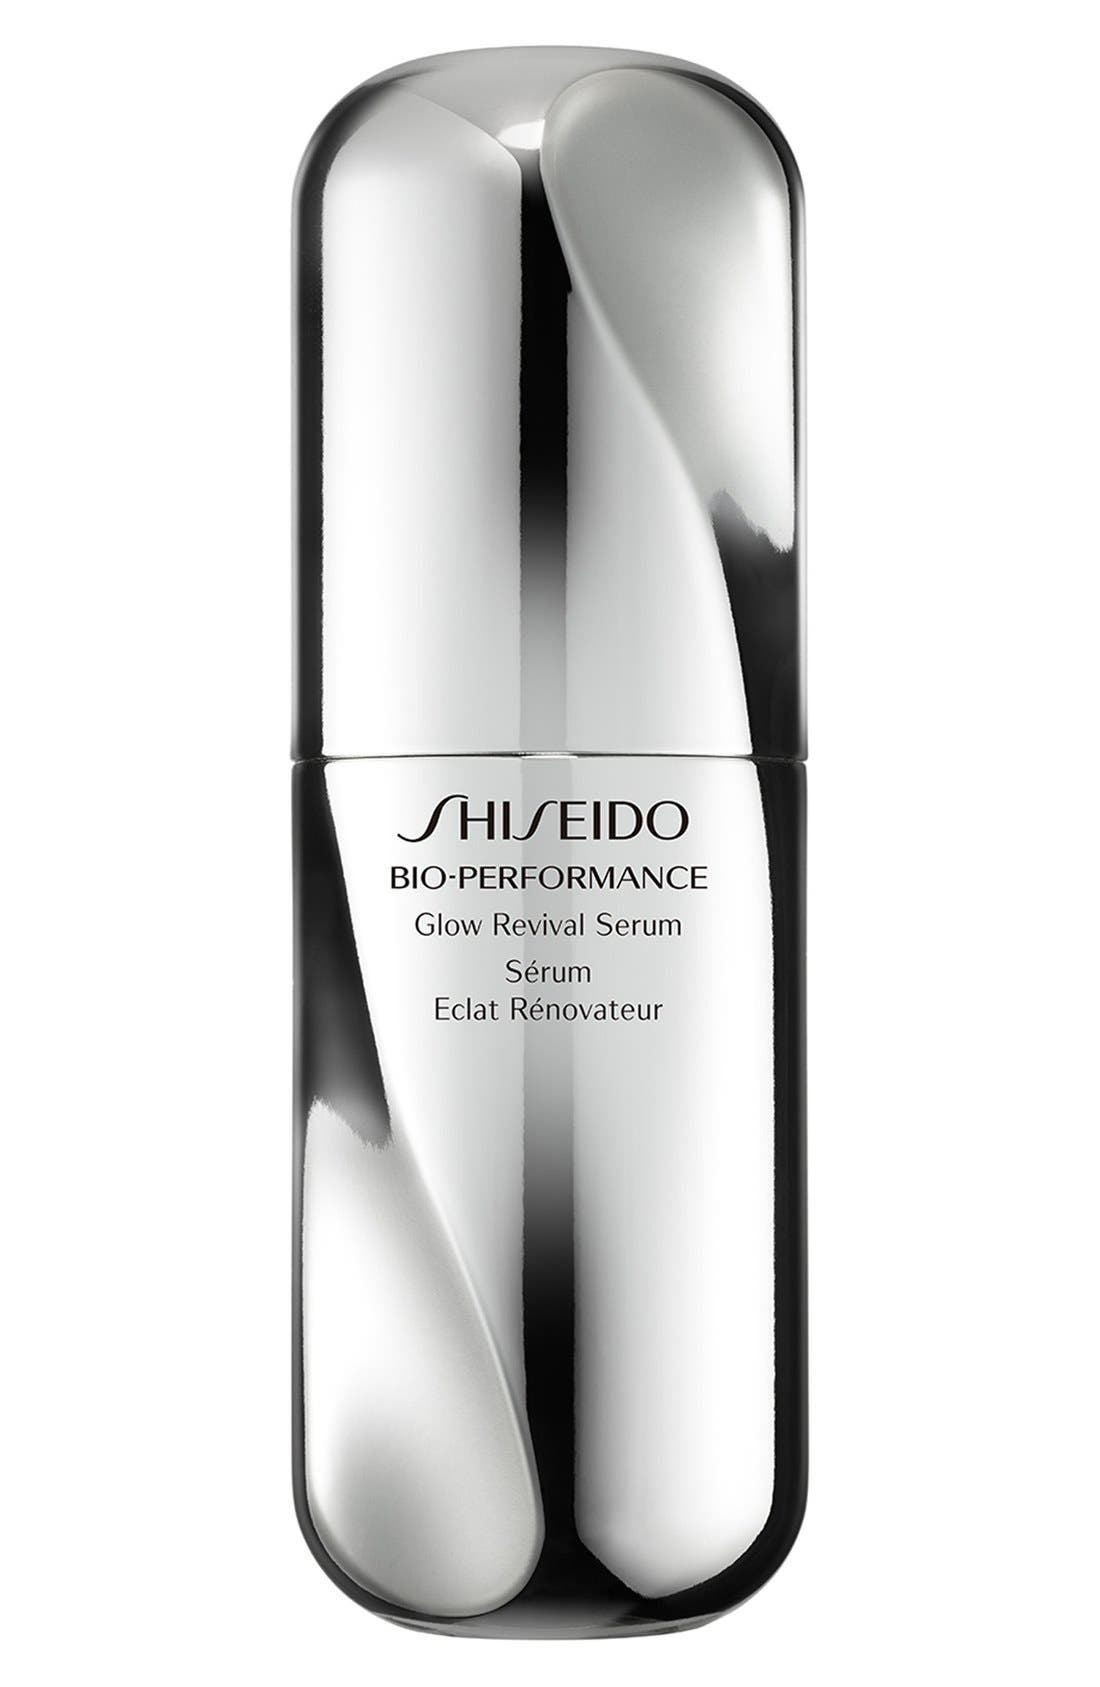 Shiseido 'Bio-Performance' Glow Revival Serum